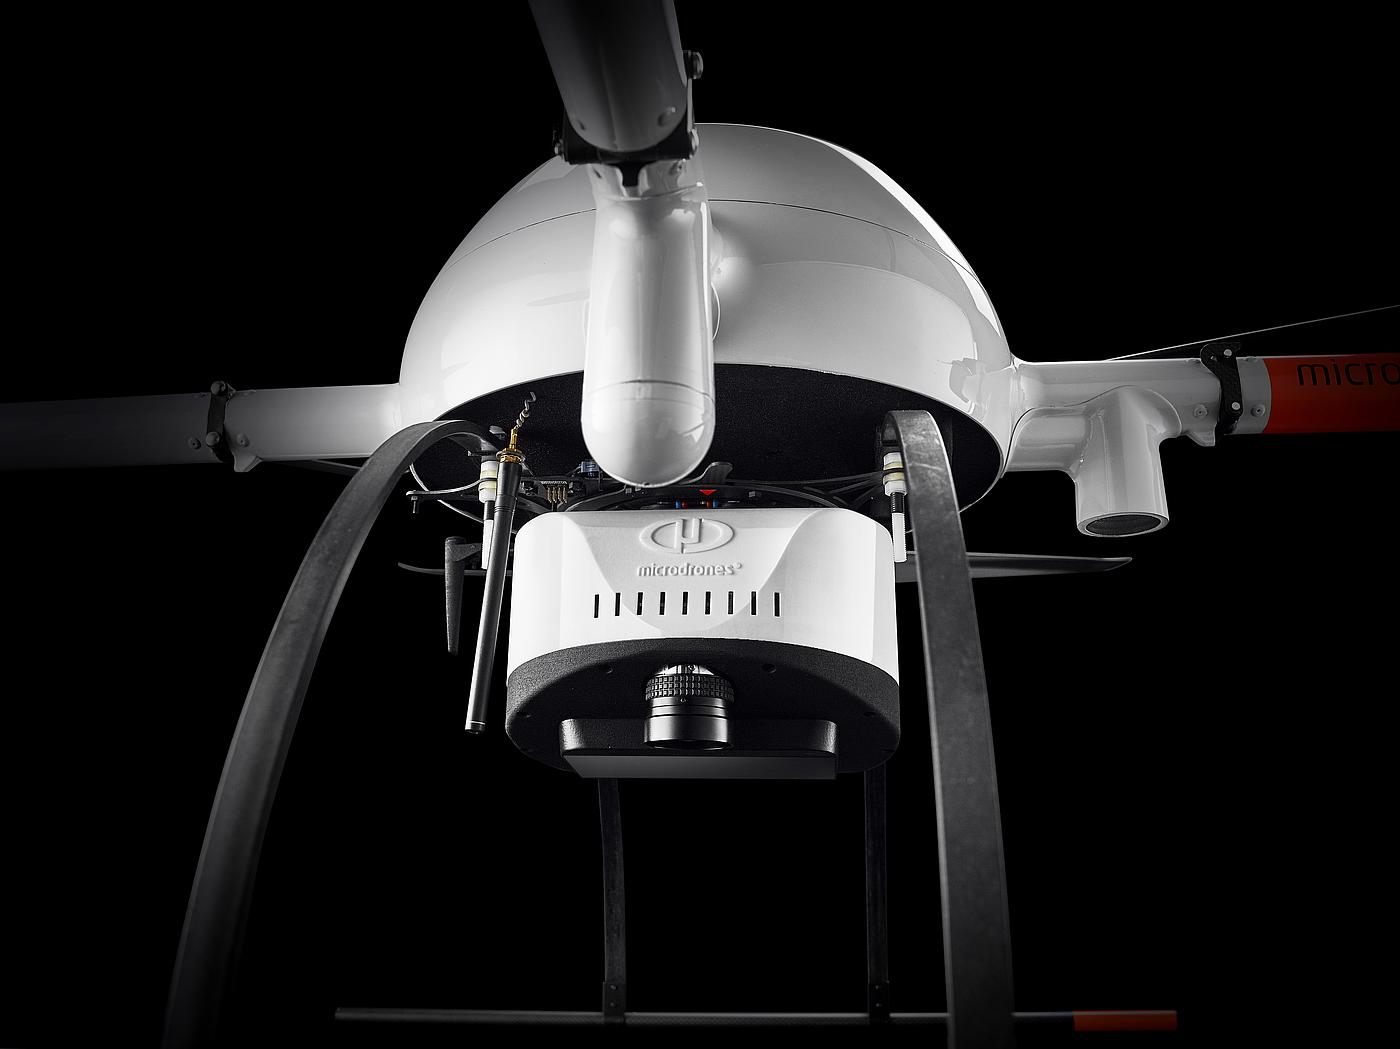 REVEALED: The COMPLETE unmanned aerial LiDAR package you've been